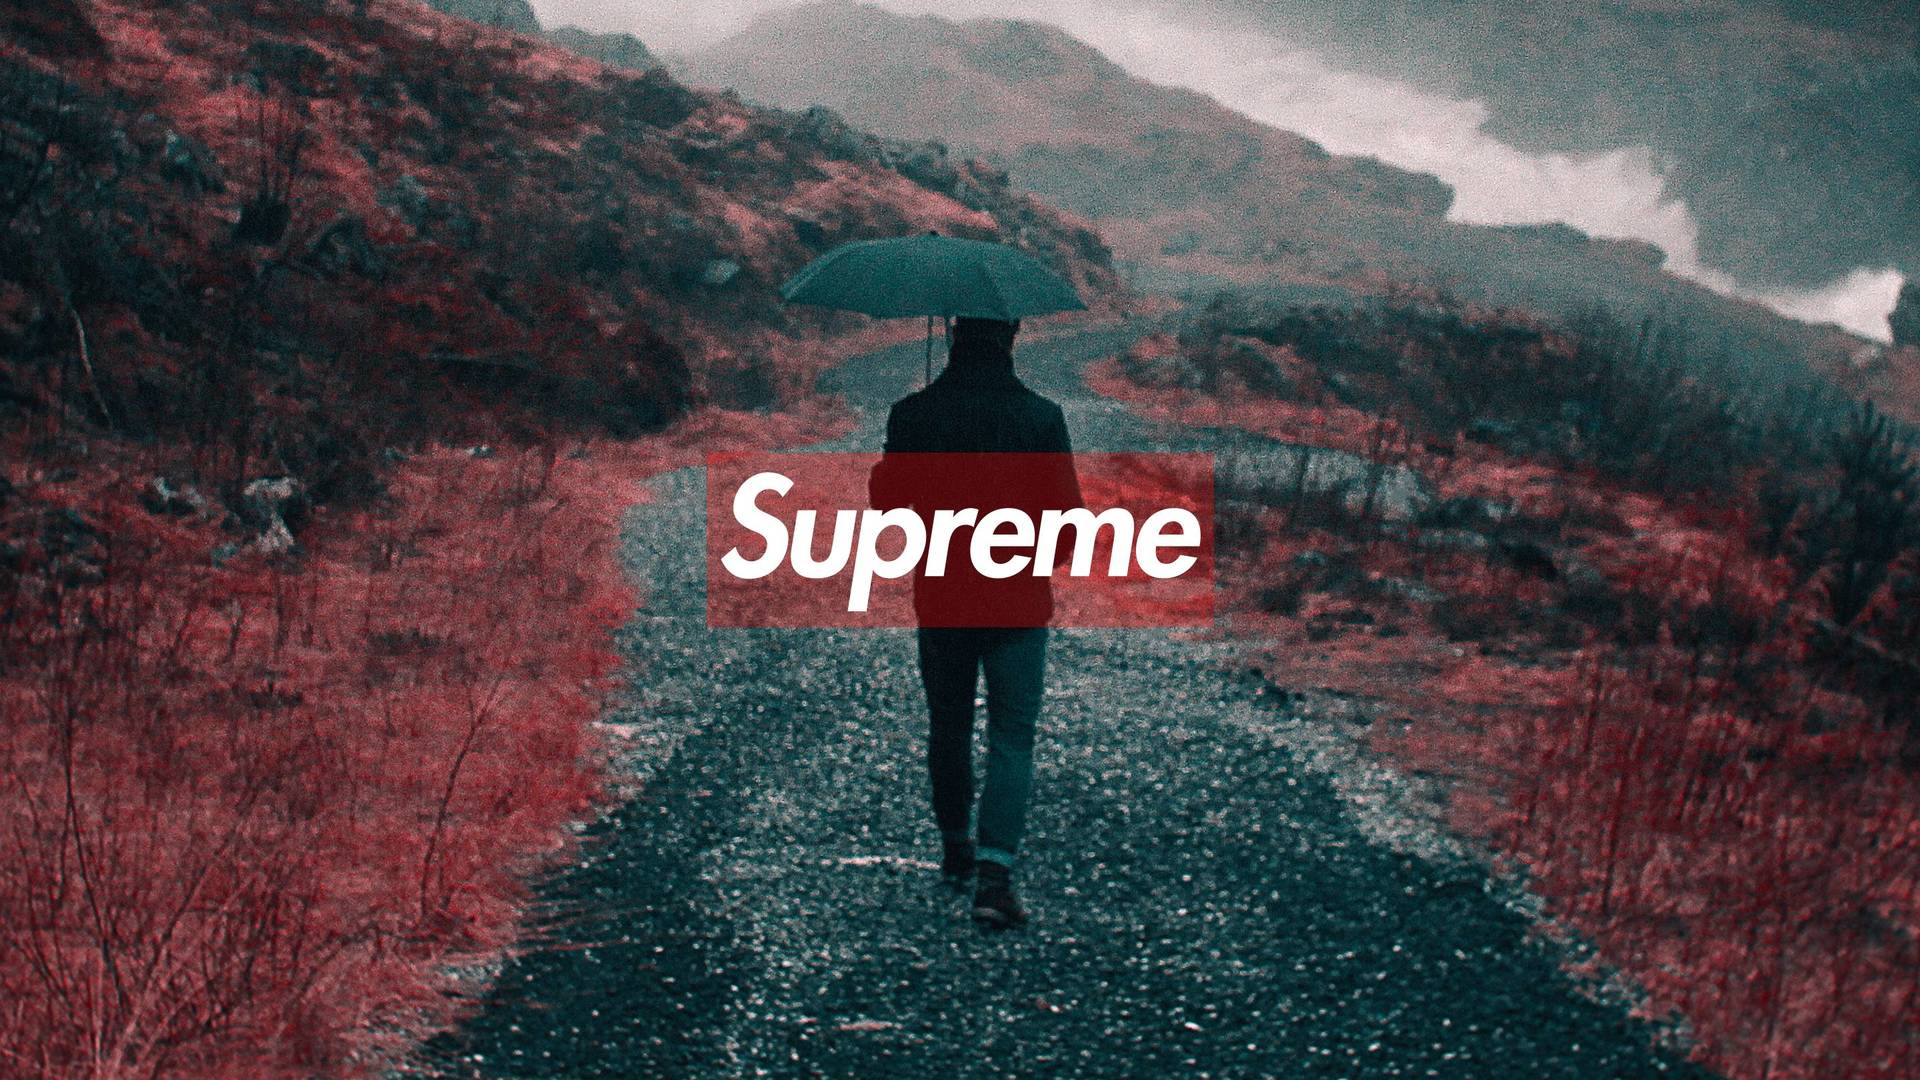 Supreme Laptop Wallpapers   Top Supreme Laptop Backgrounds 1920x1080